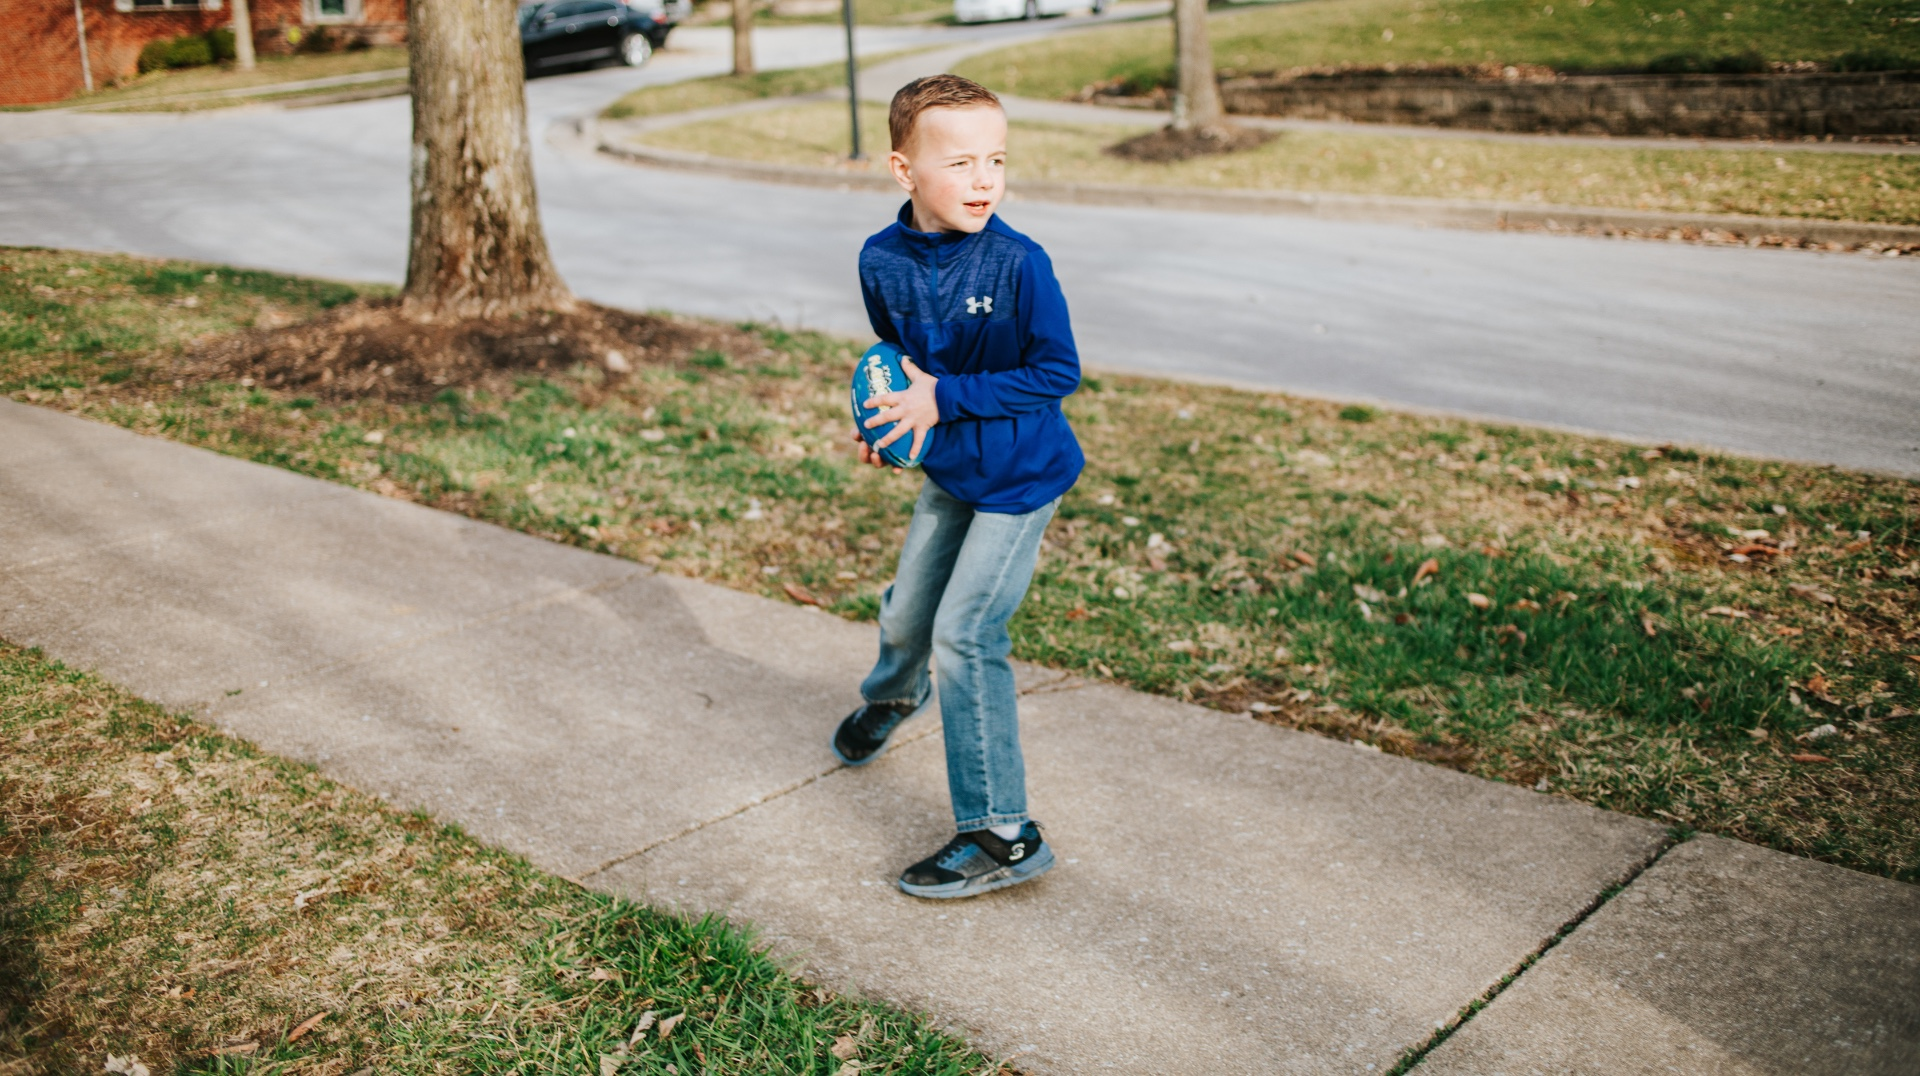 Henry stands on the pavement outside. He is about to throw a blue football and poses in the position to do so.